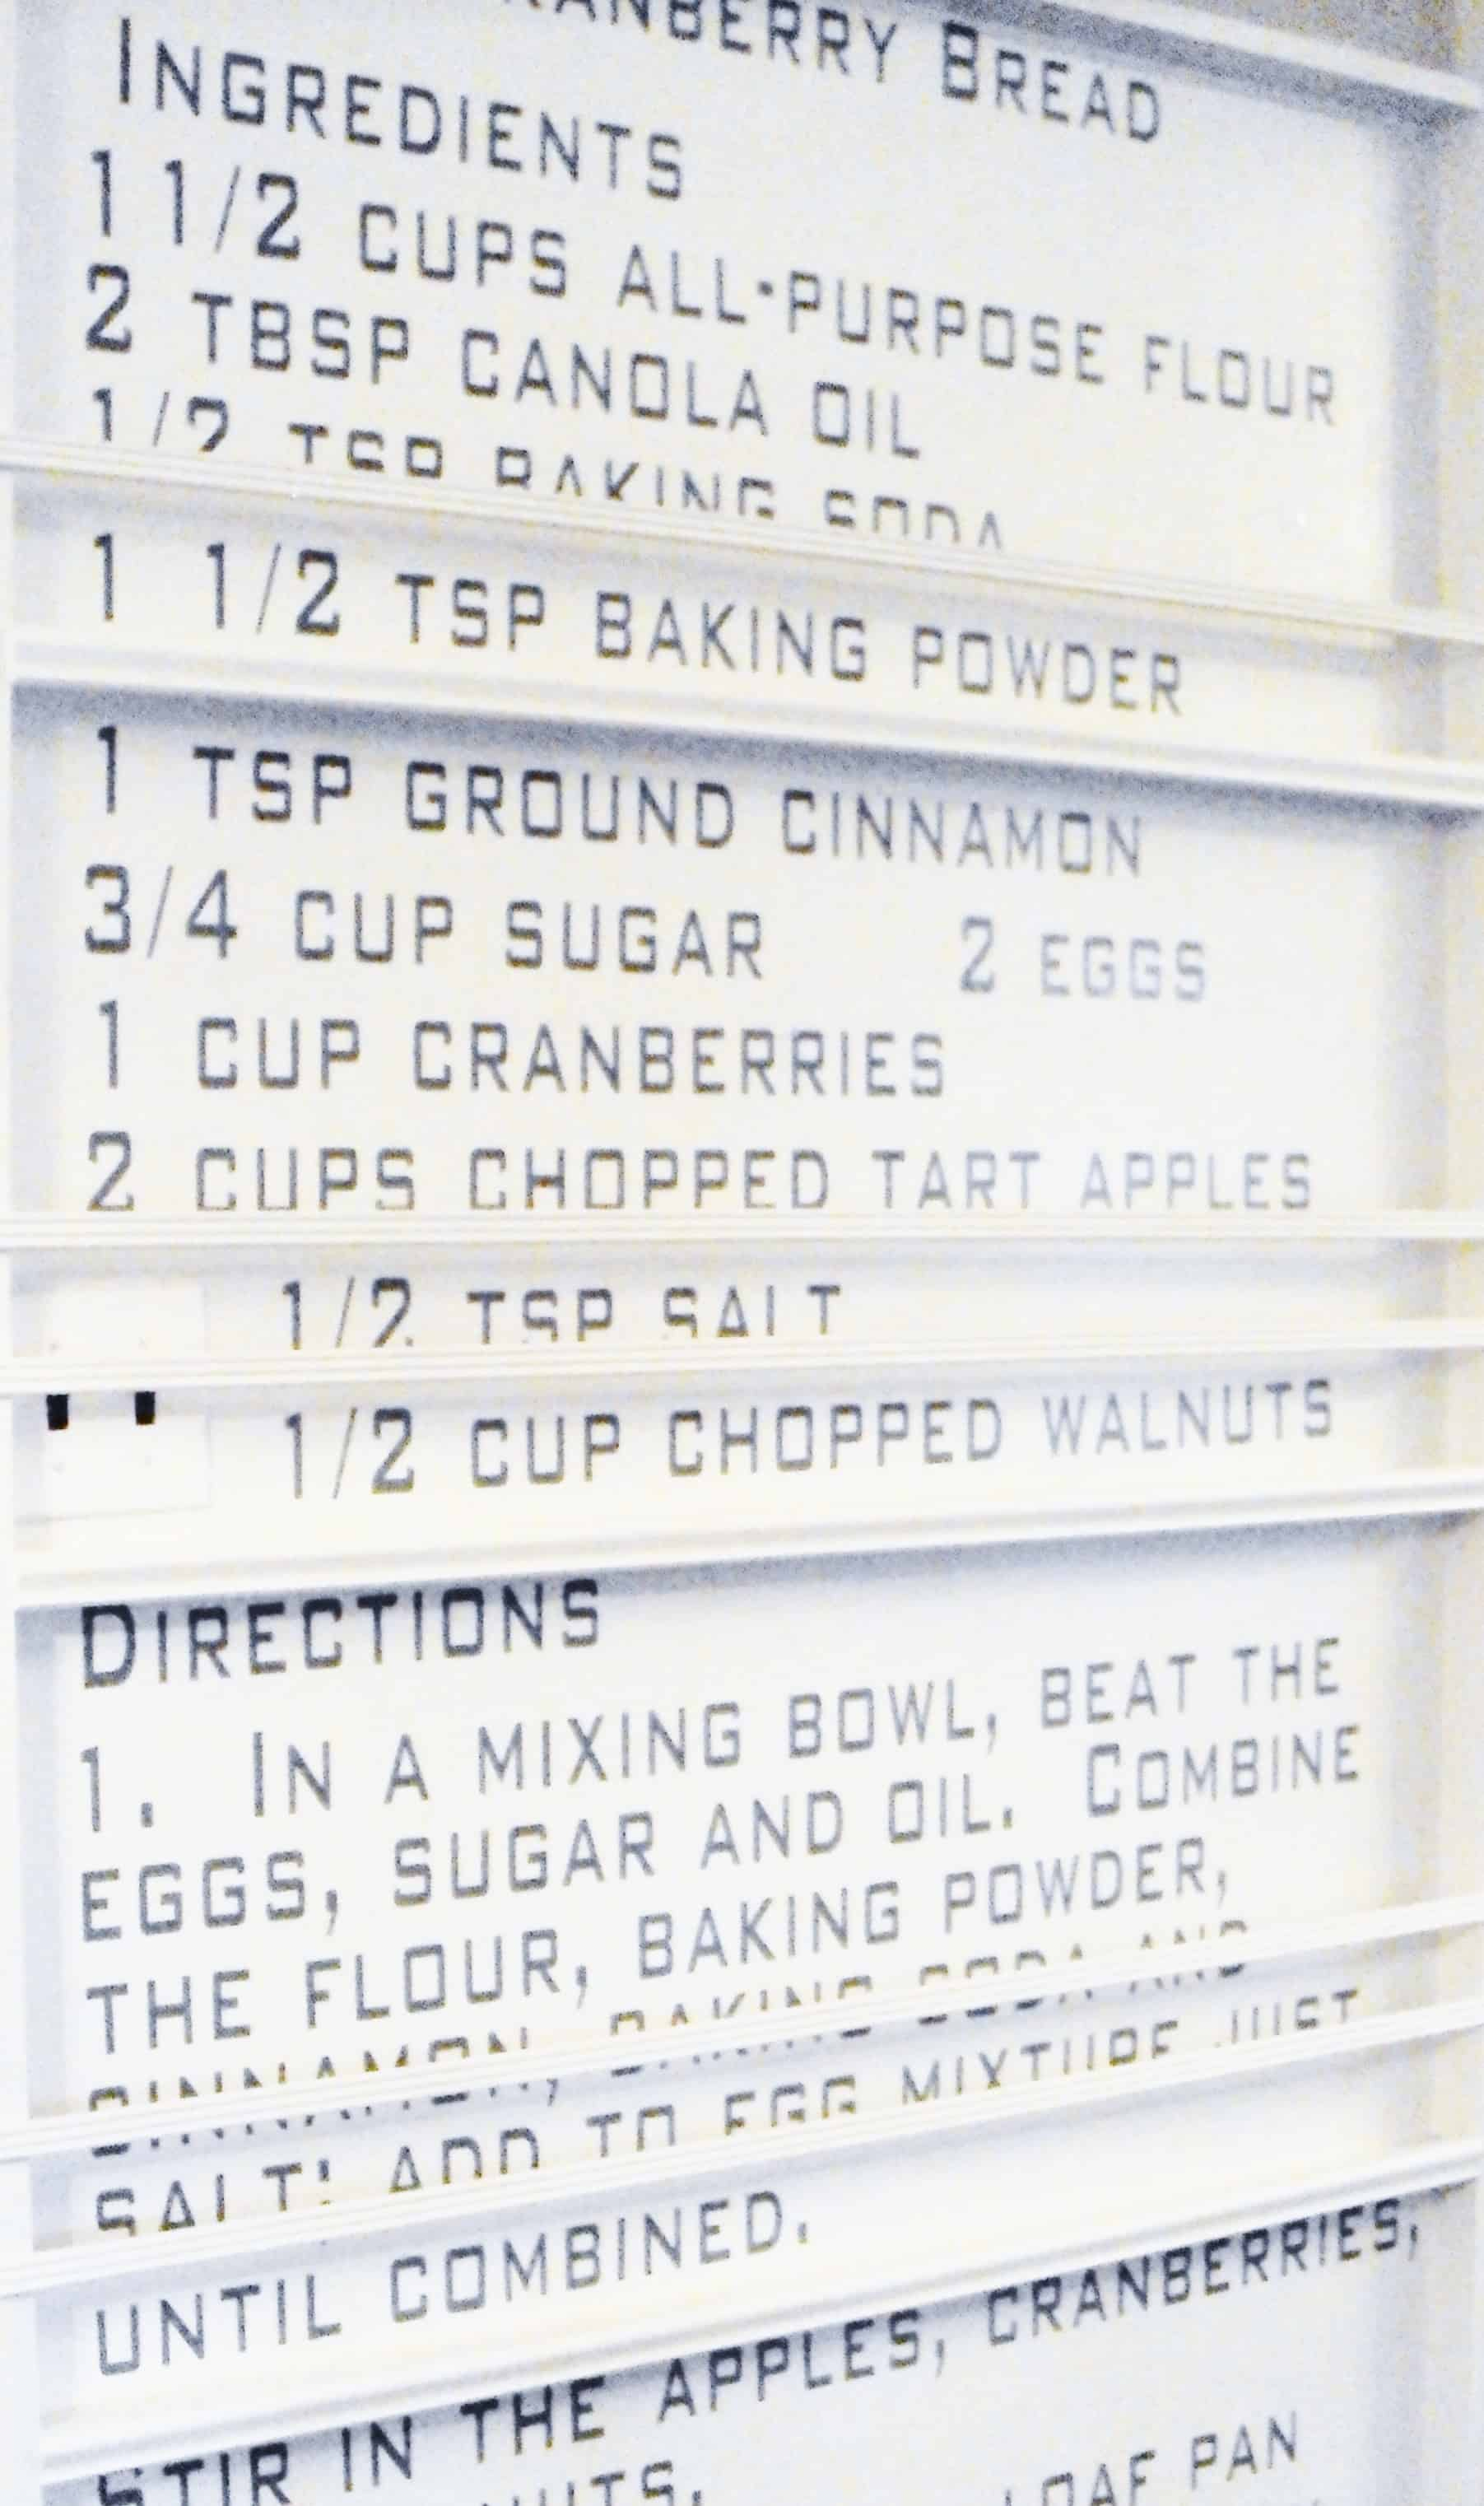 Once the recipe wall is complete, ensure you're happy with the end result.